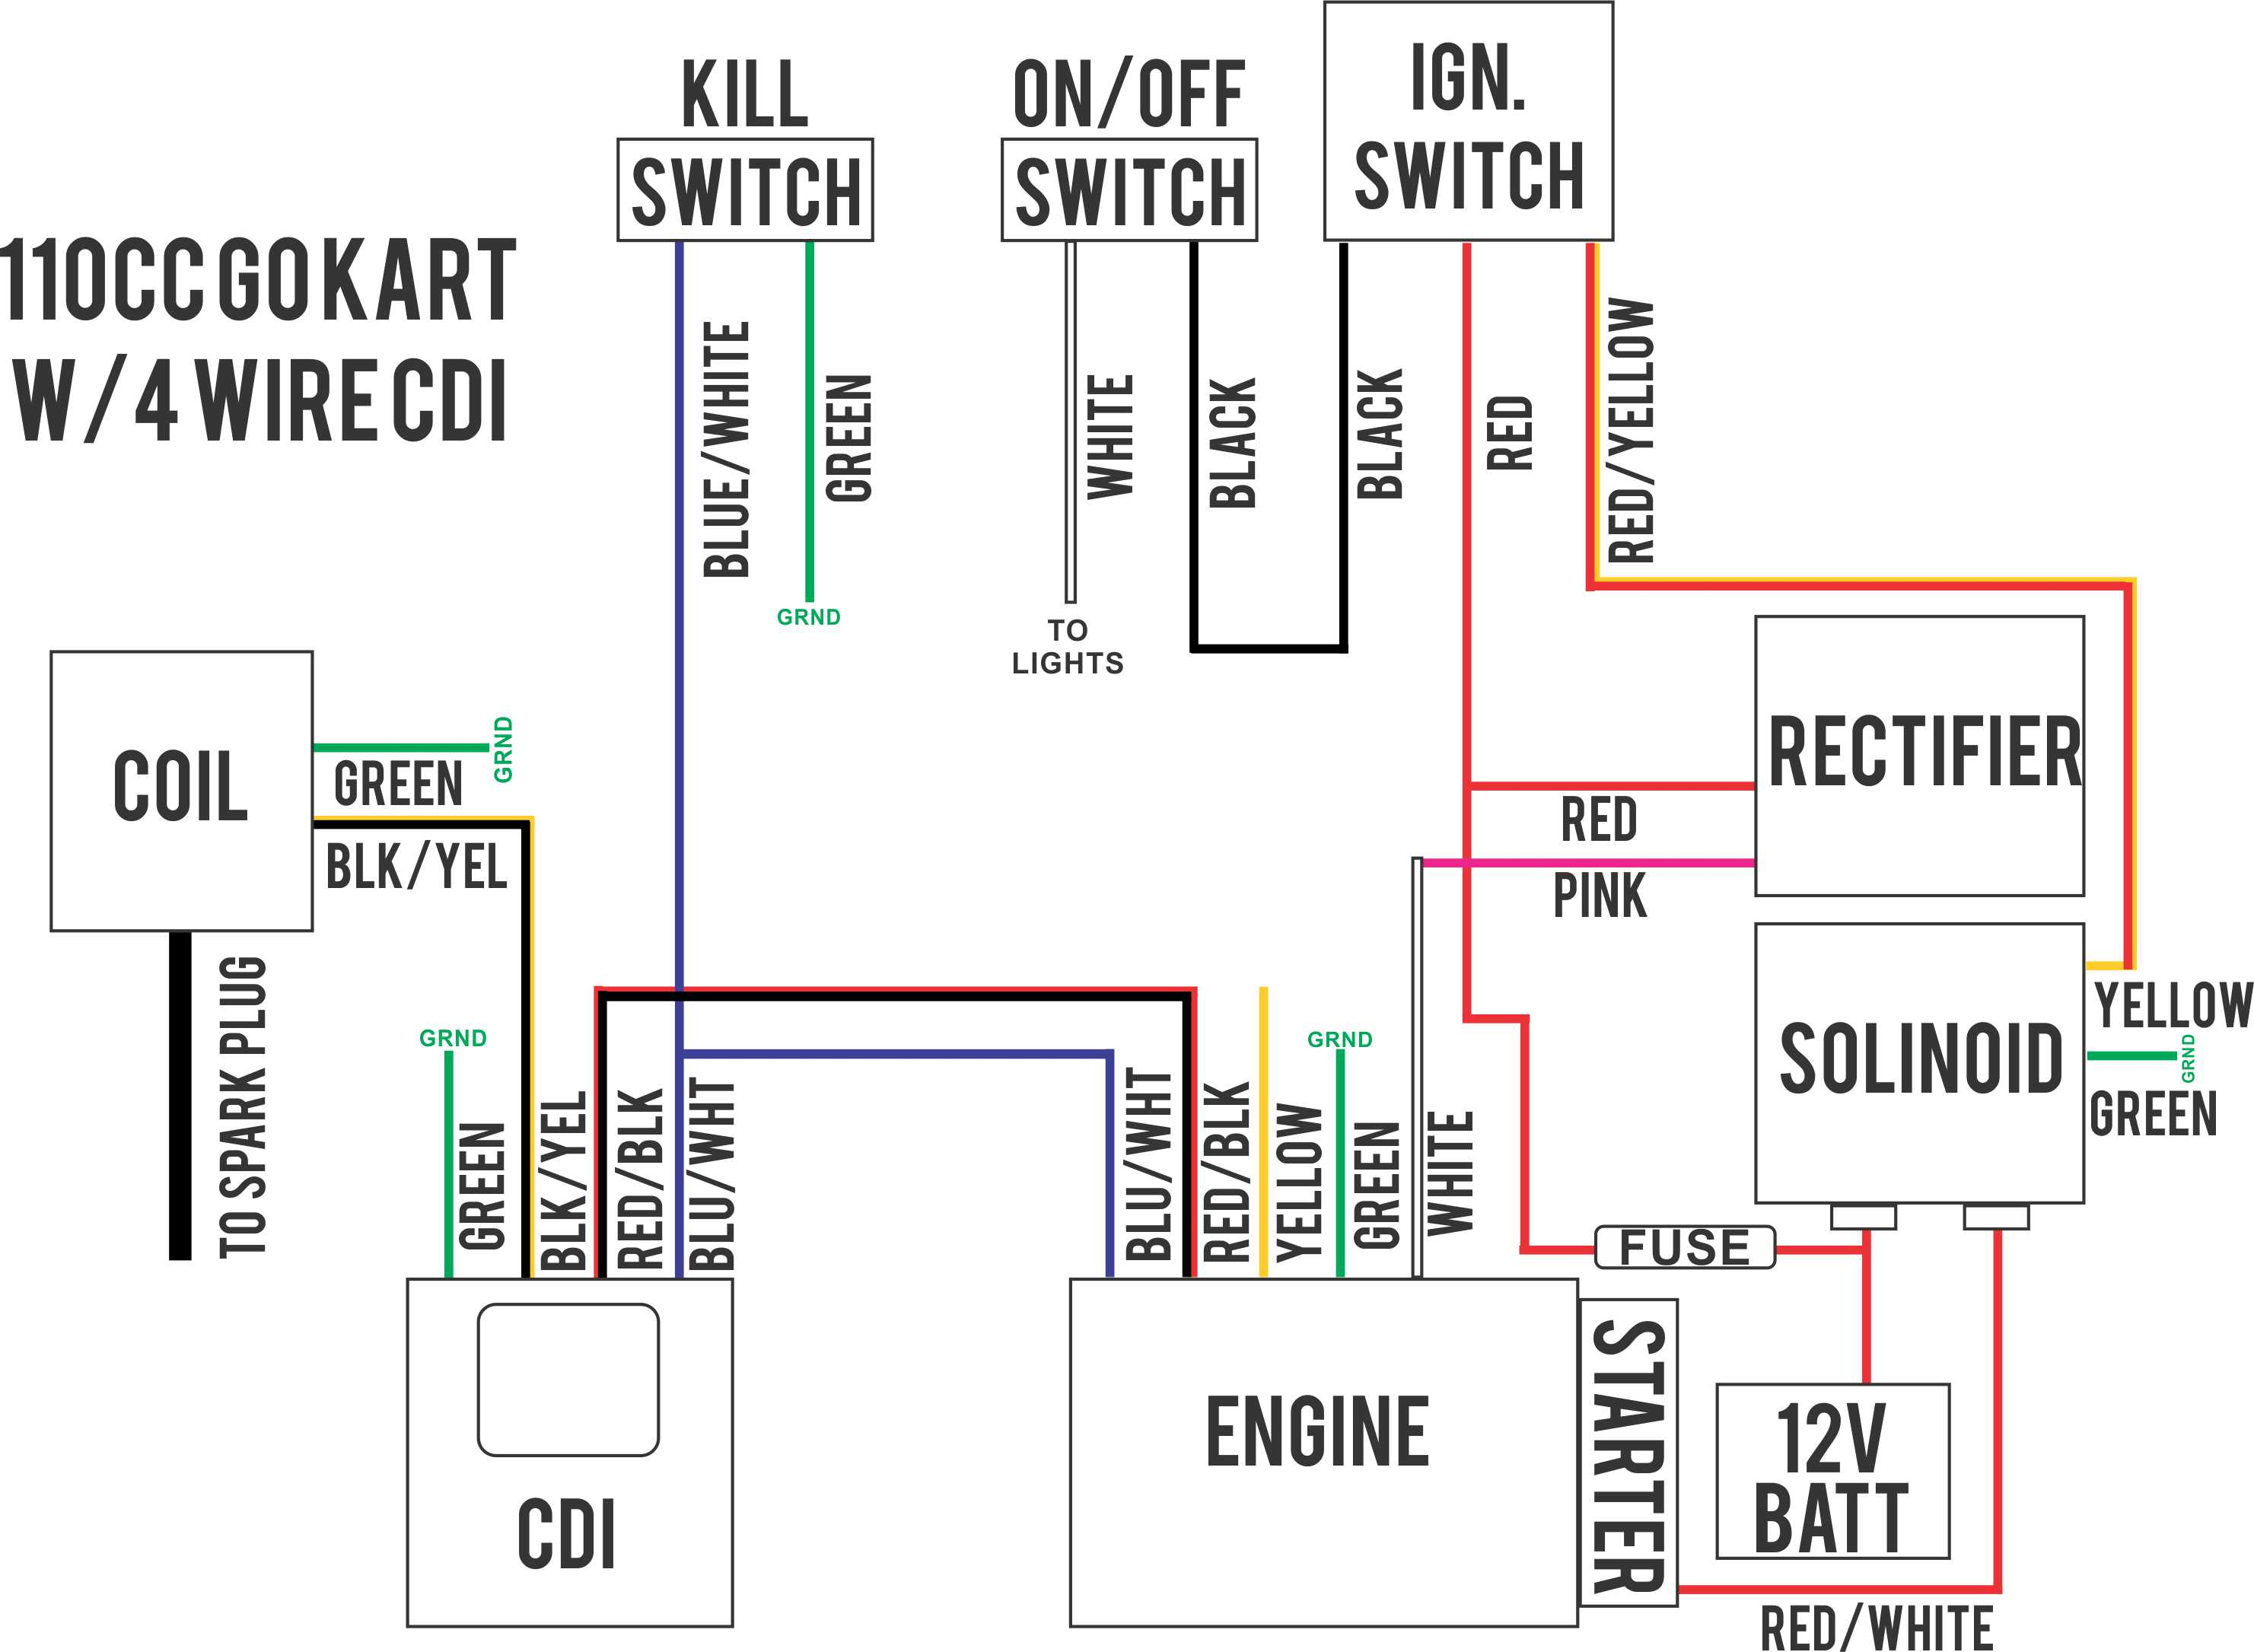 Motorcycle Ignition Schematic - Wiring Diagrams Hubs - Onan Generator Remote Start Switch Wiring Diagram